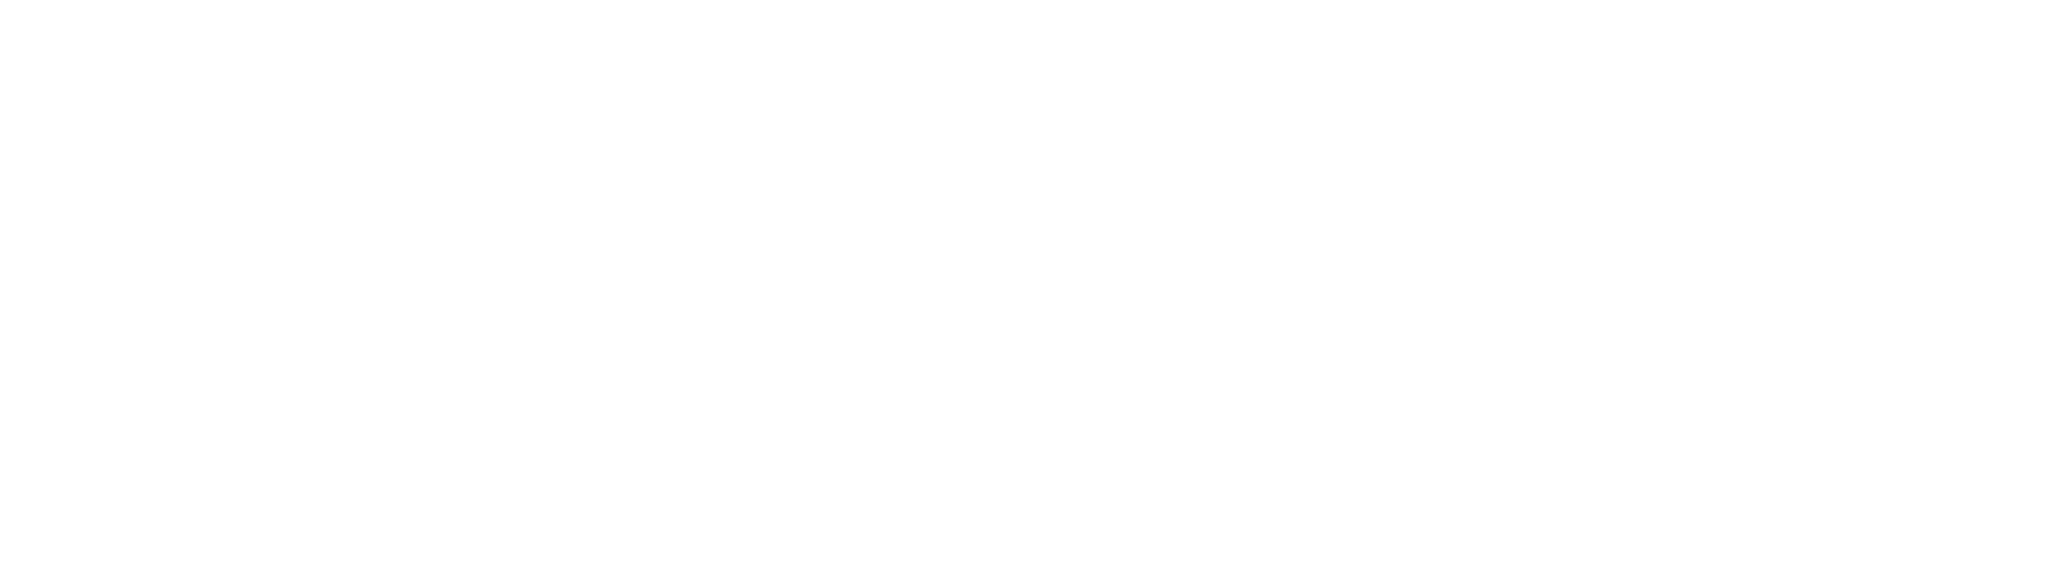 Construction Services Concepts